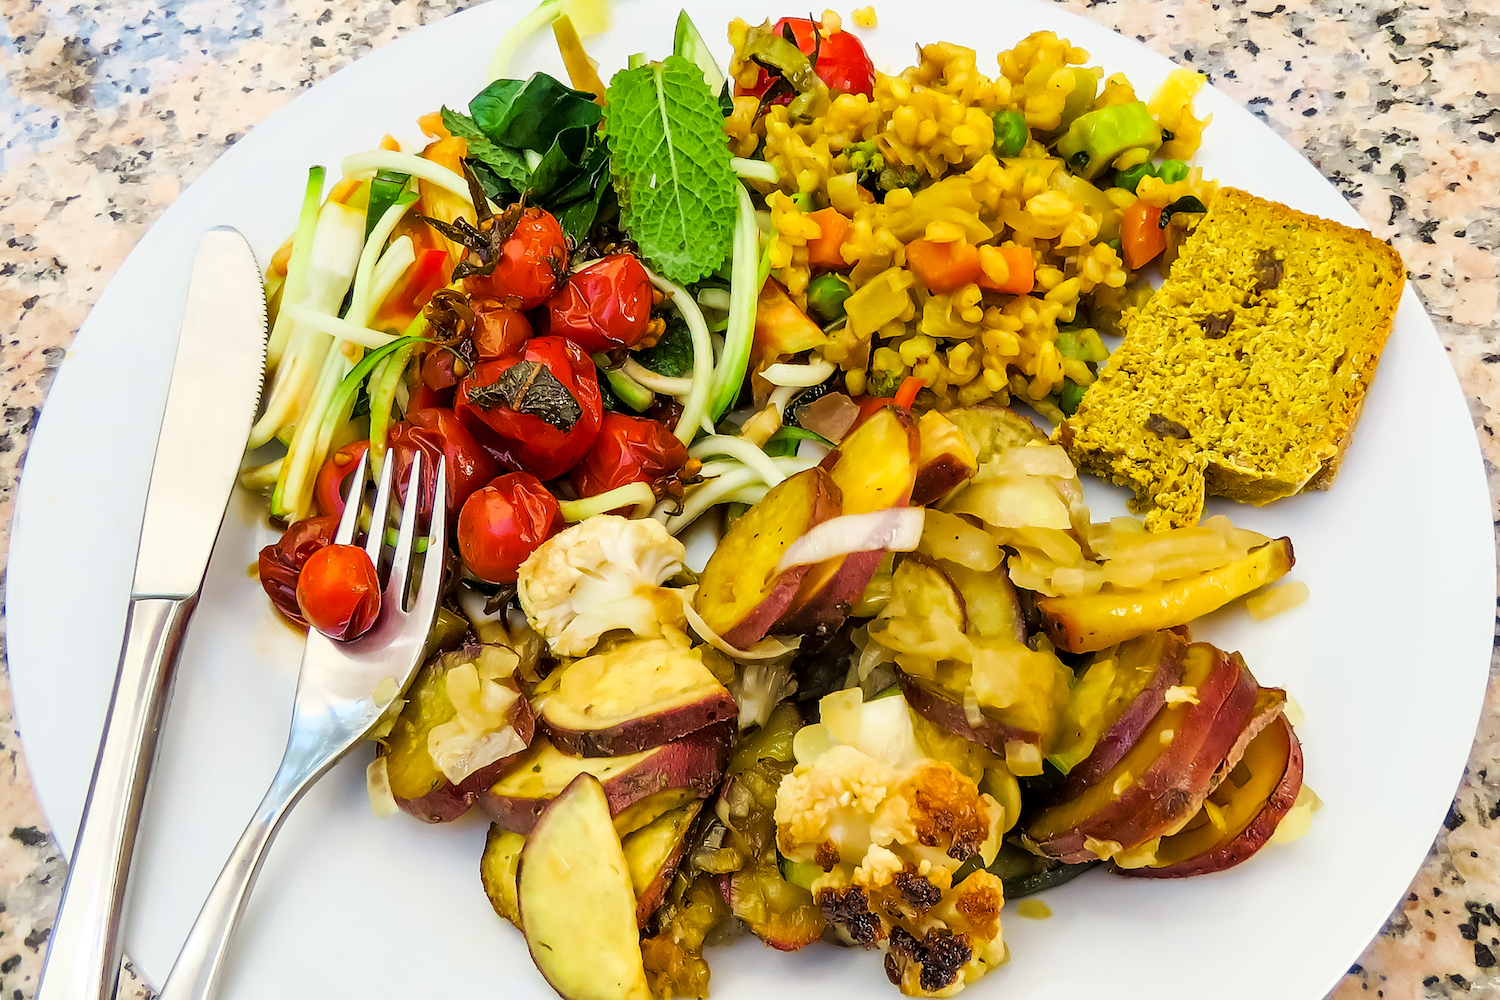 Plate of Vegetarian Food